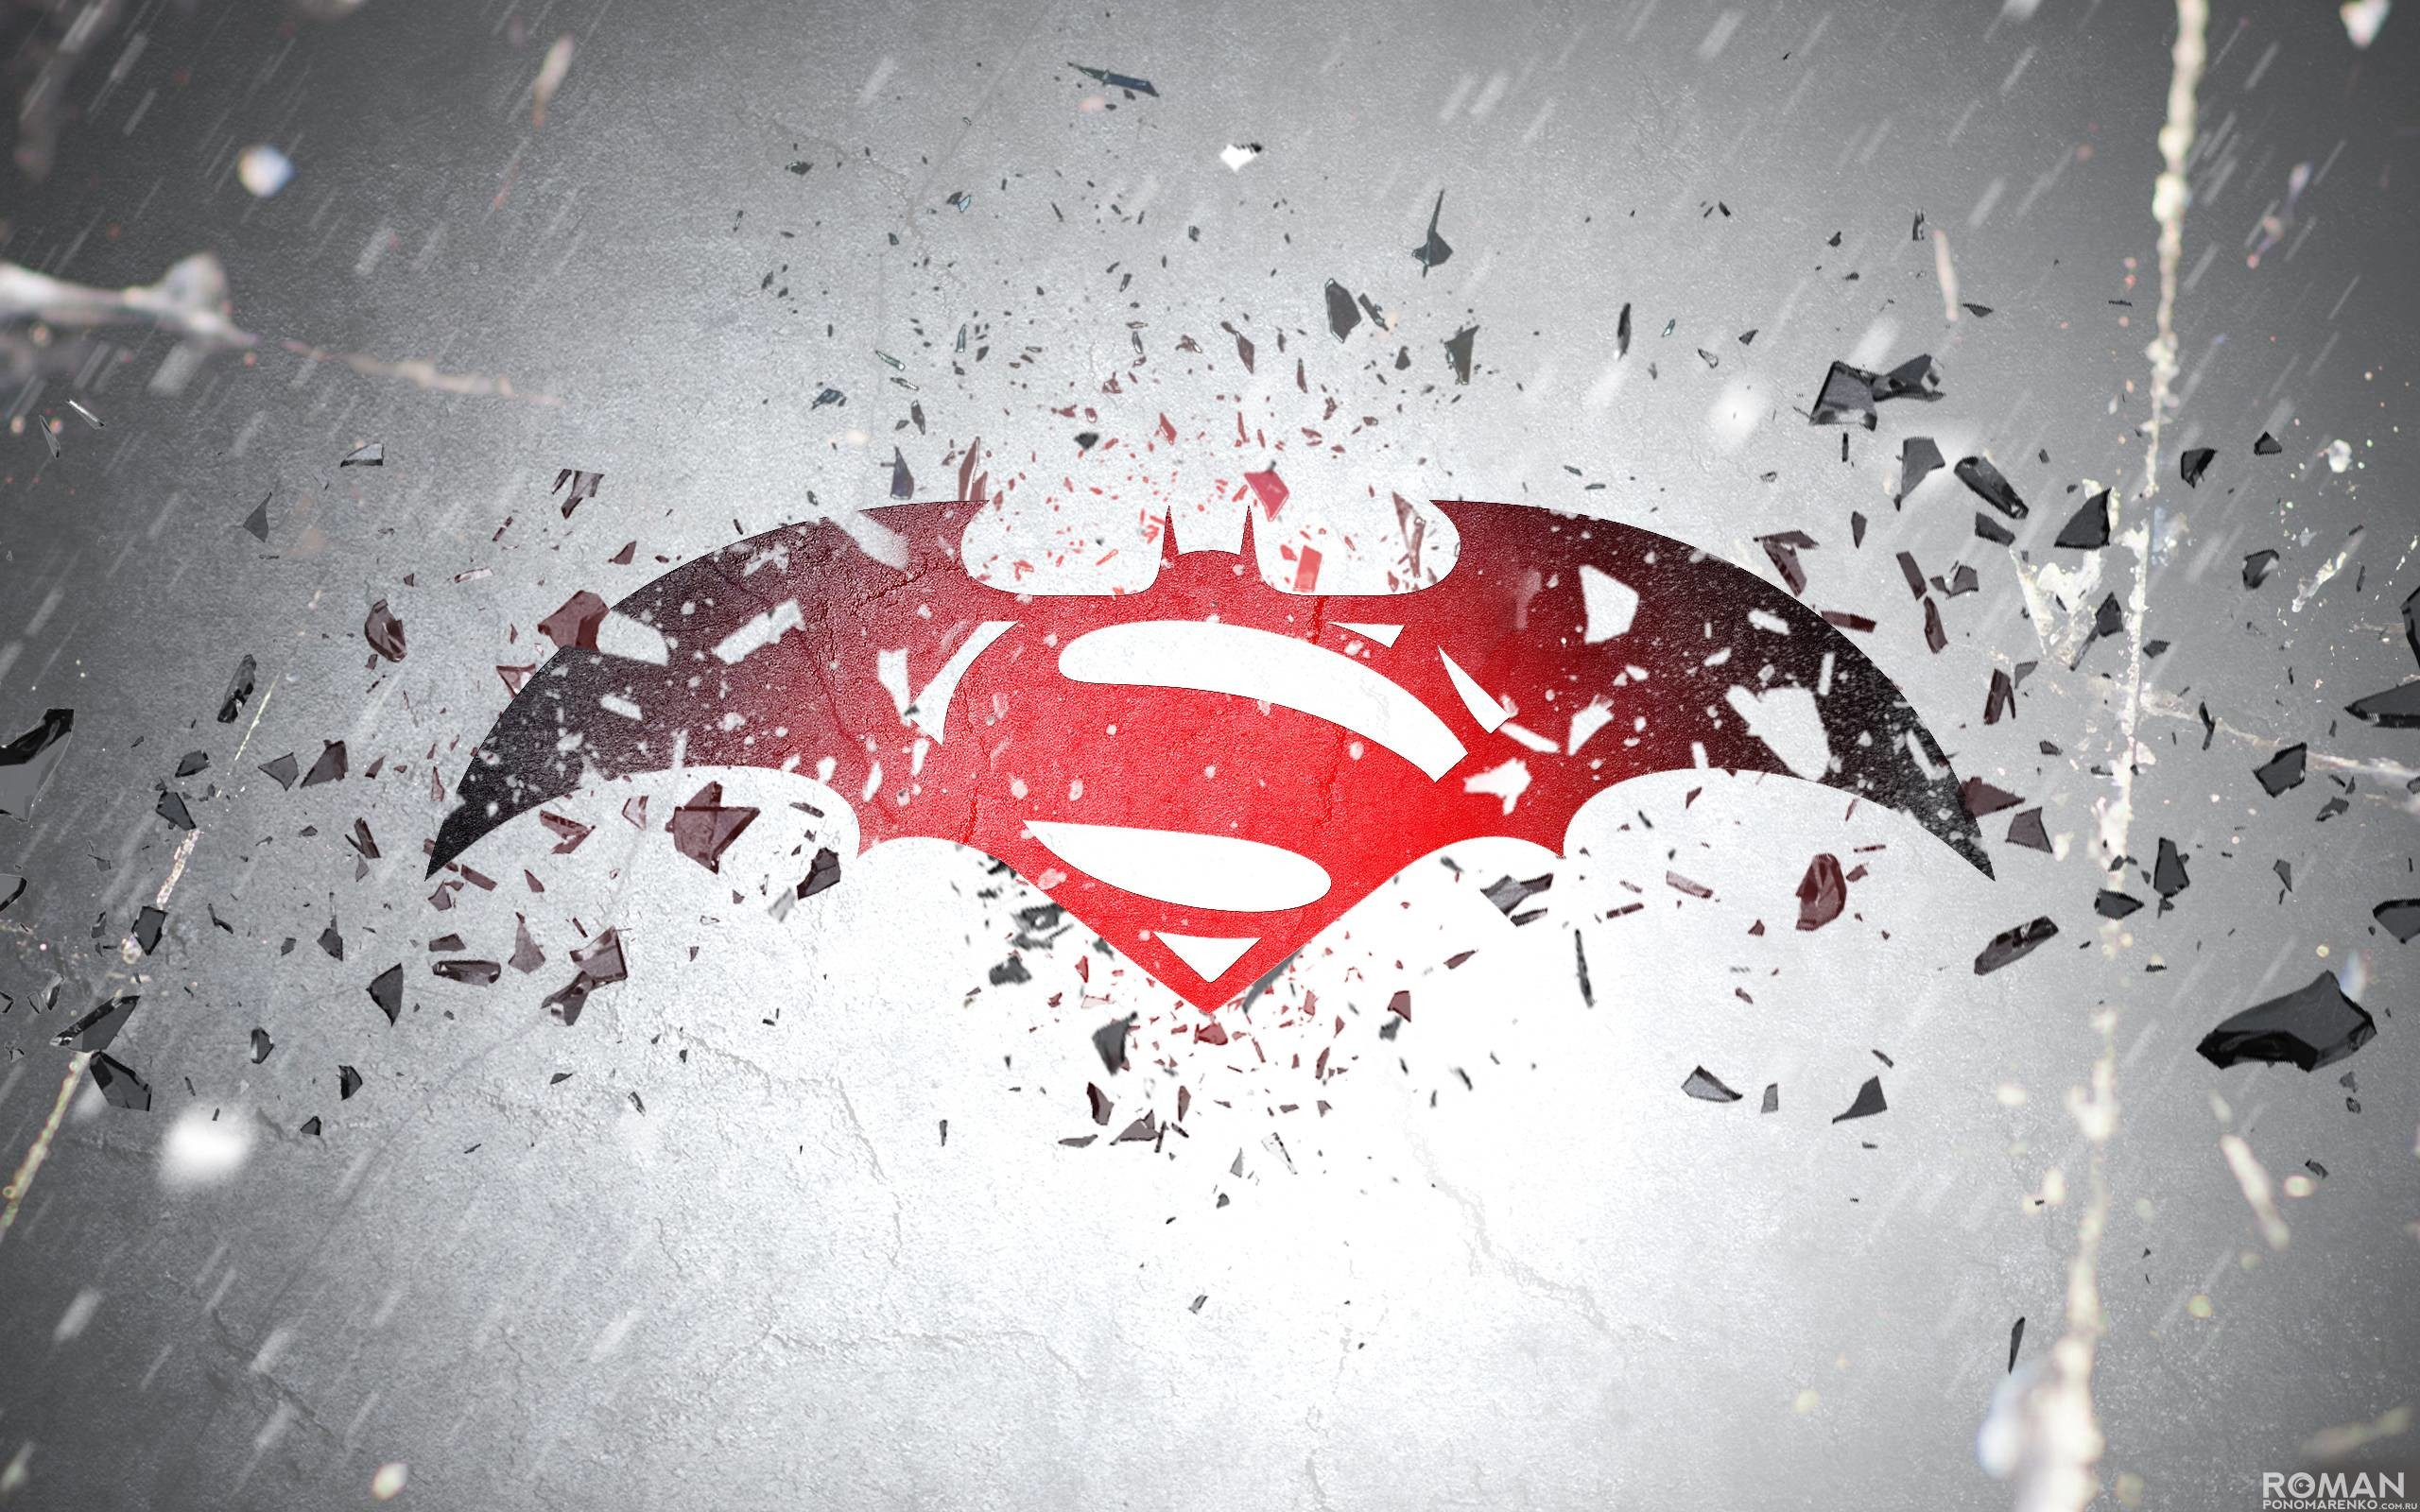 2560x1600 Batman V Superman Logo Exclusive HD Wallpapers #6799